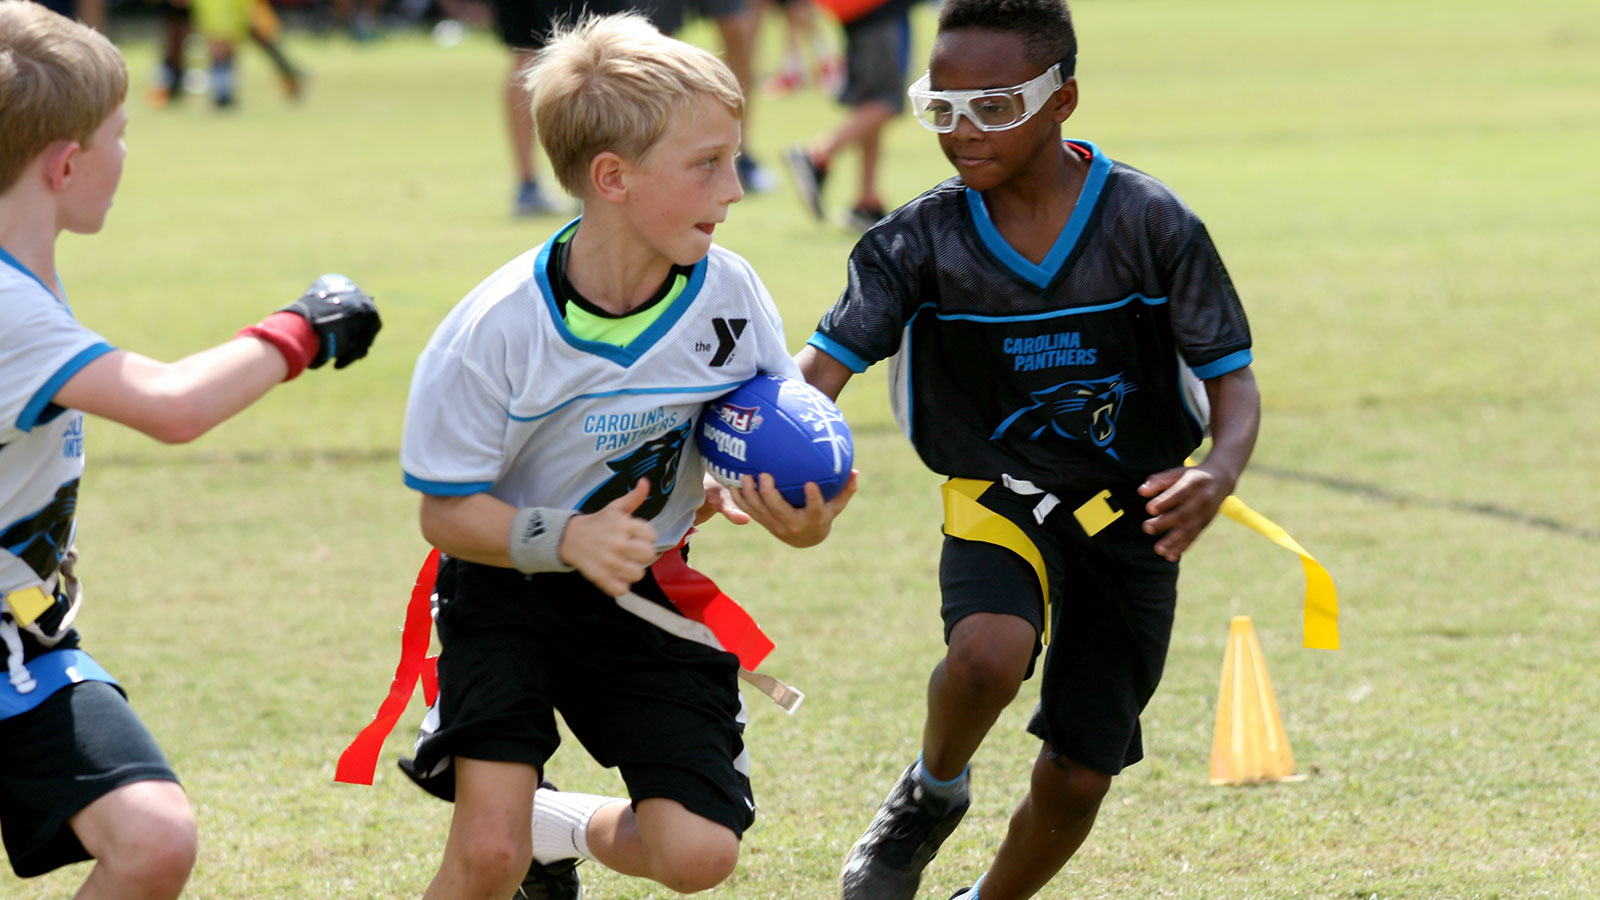 NFL Flag Football Grant